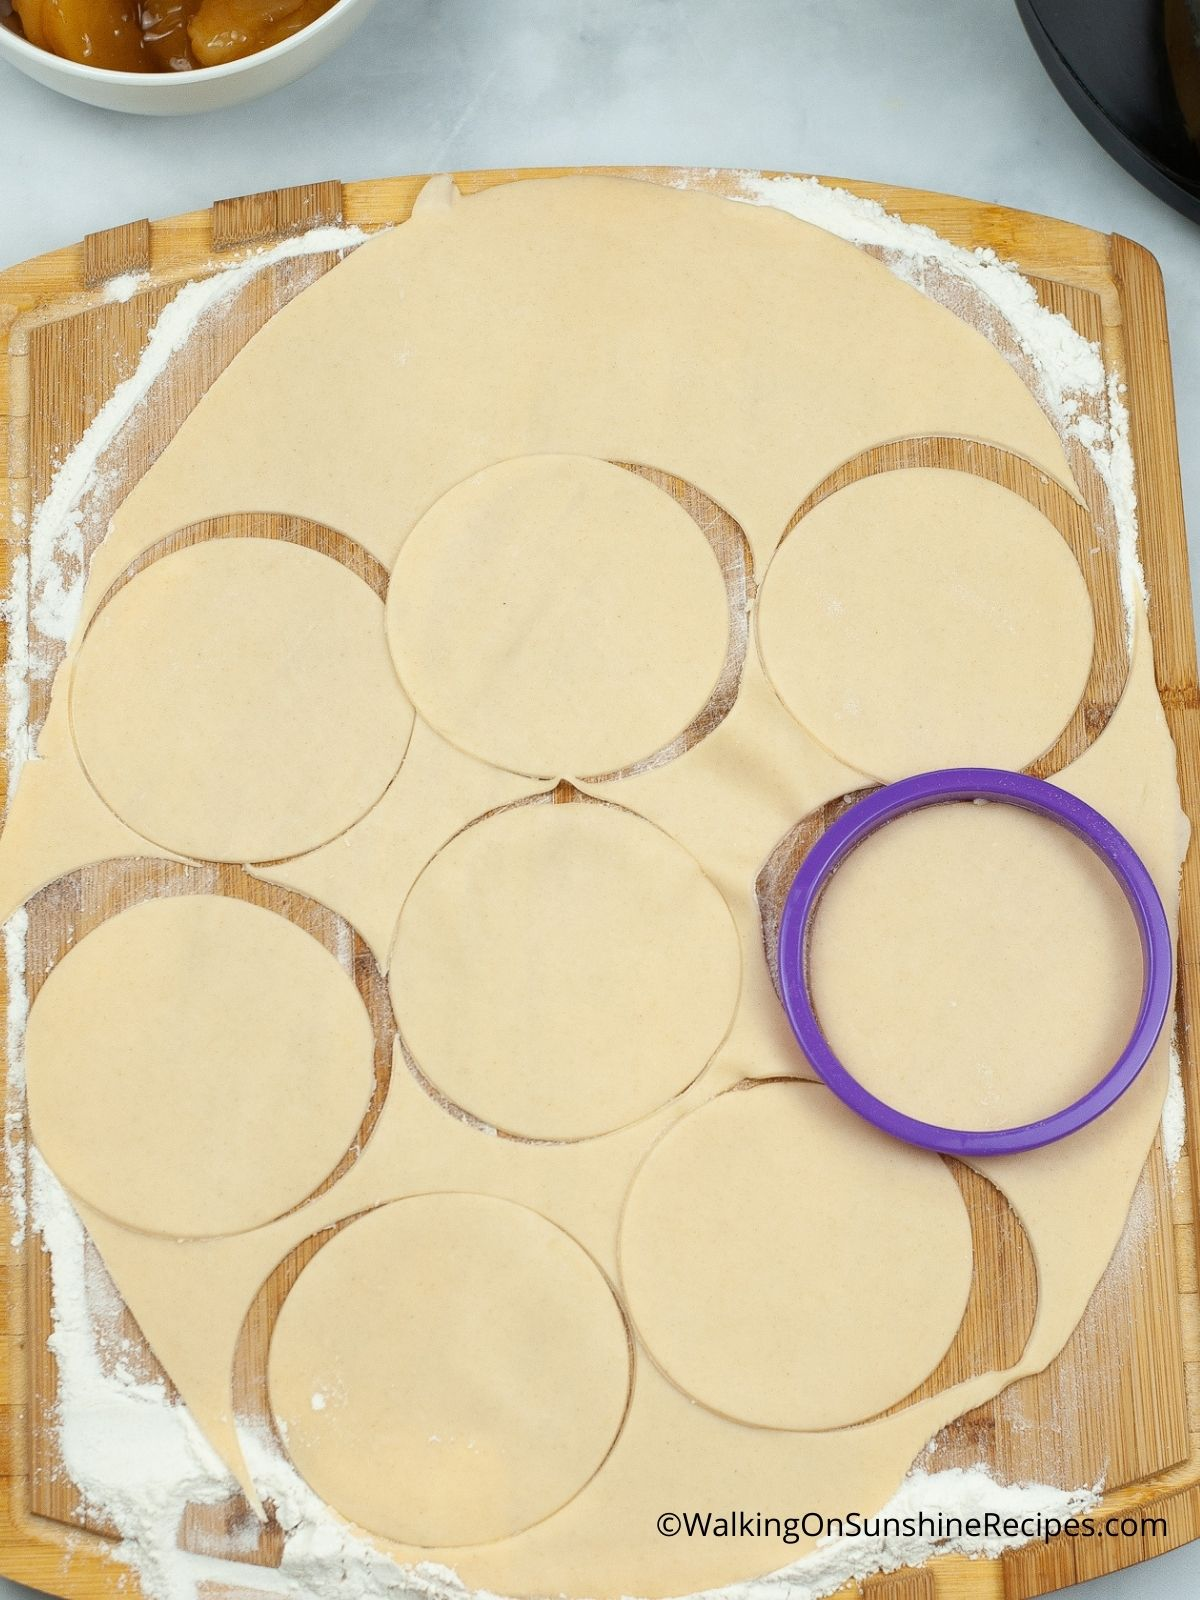 Cut out circle shapes with cookie cutter.